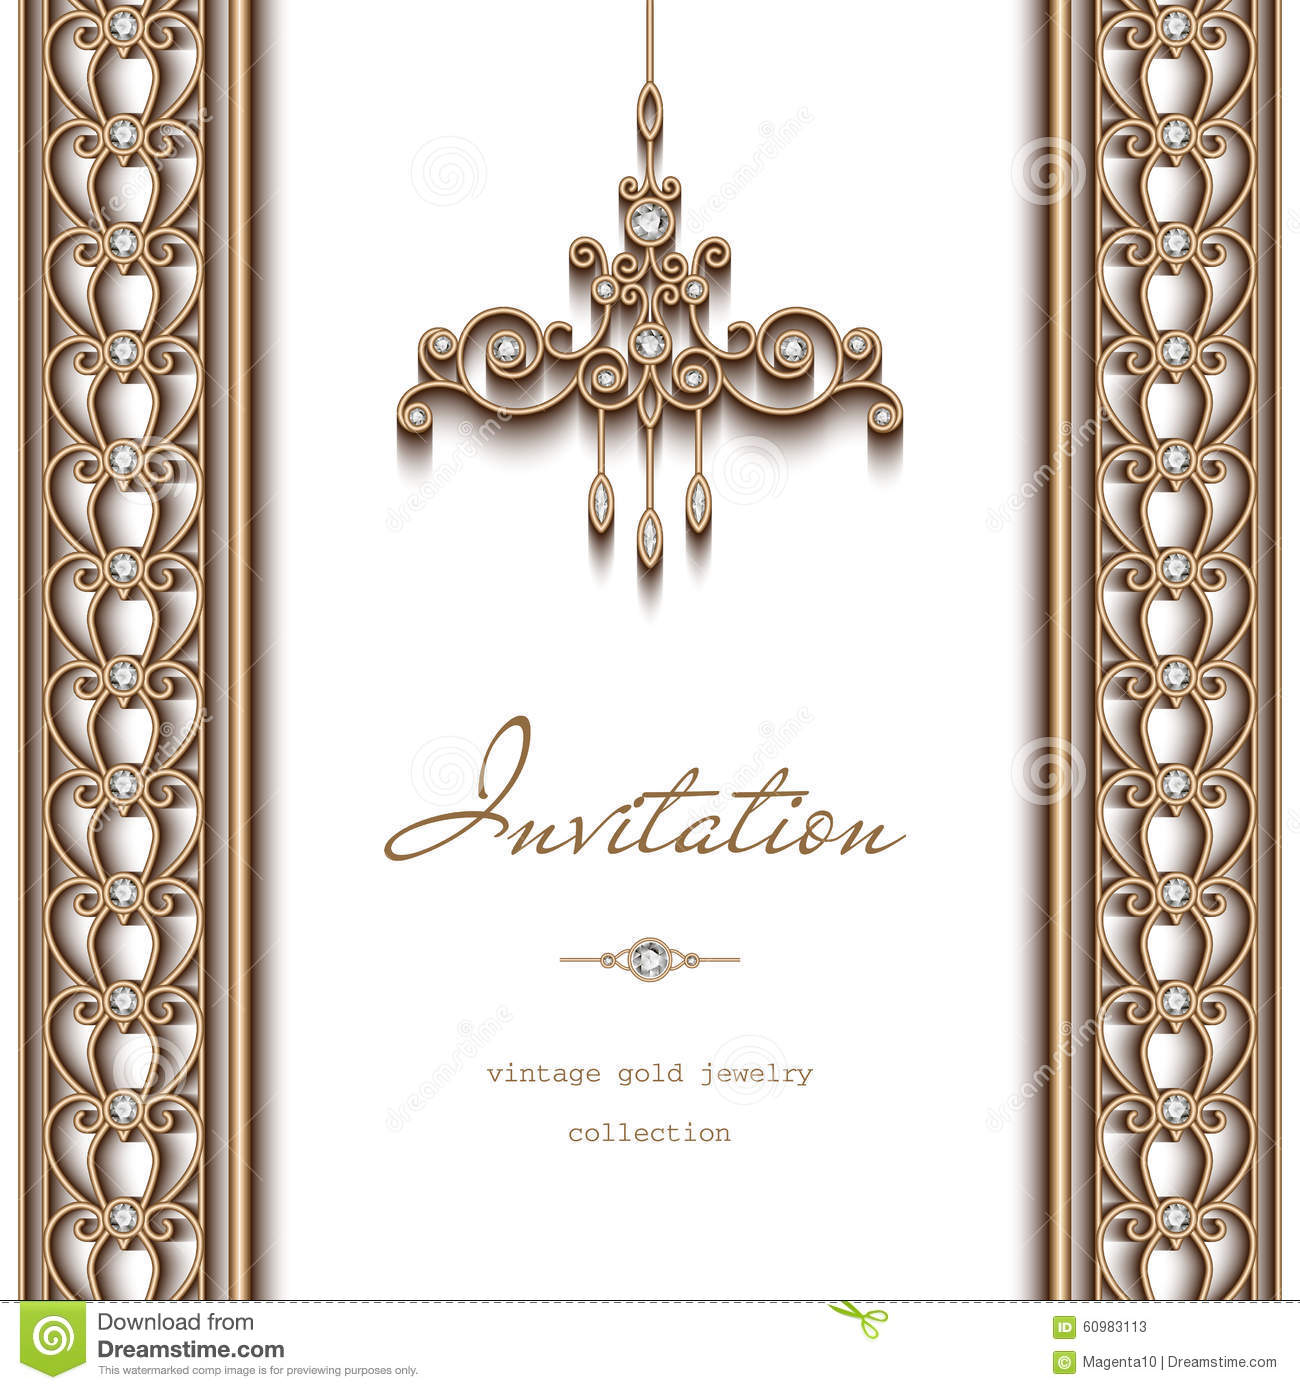 Gold Jewelry Background Invitation Template Stock Vector